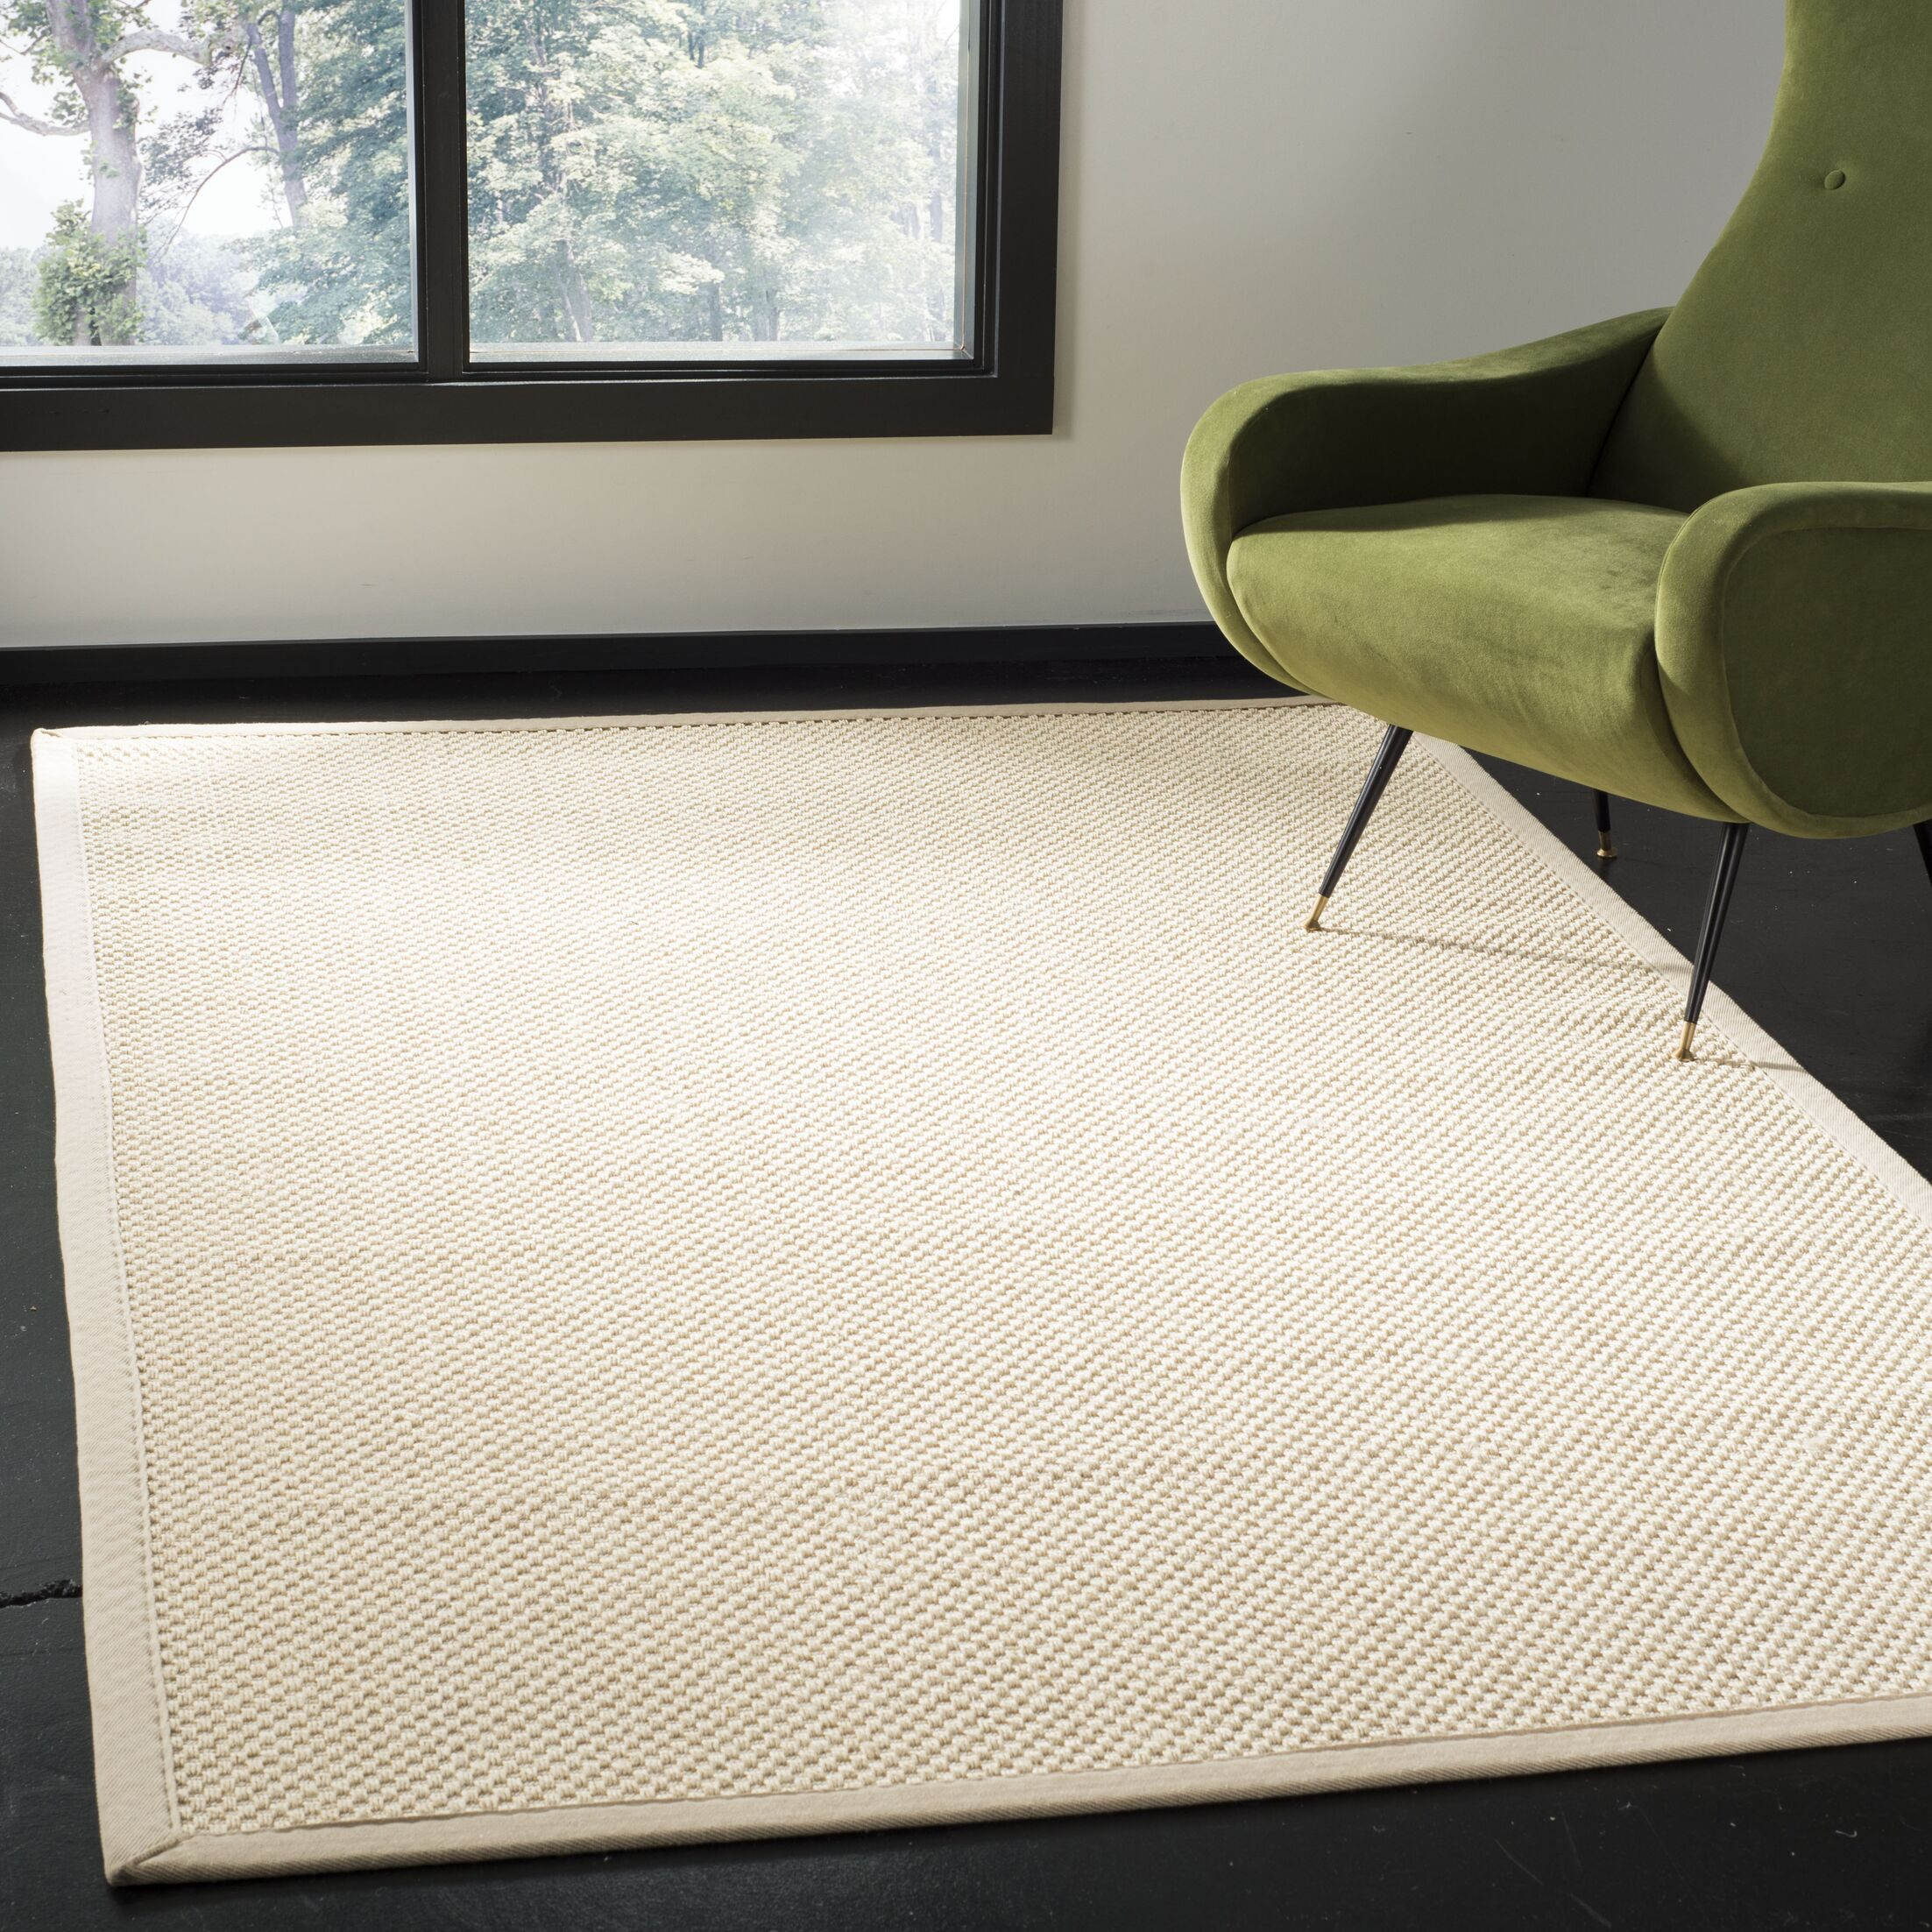 Chaidez Beige Ivory Area Rug Rug Size: Runner 2'6